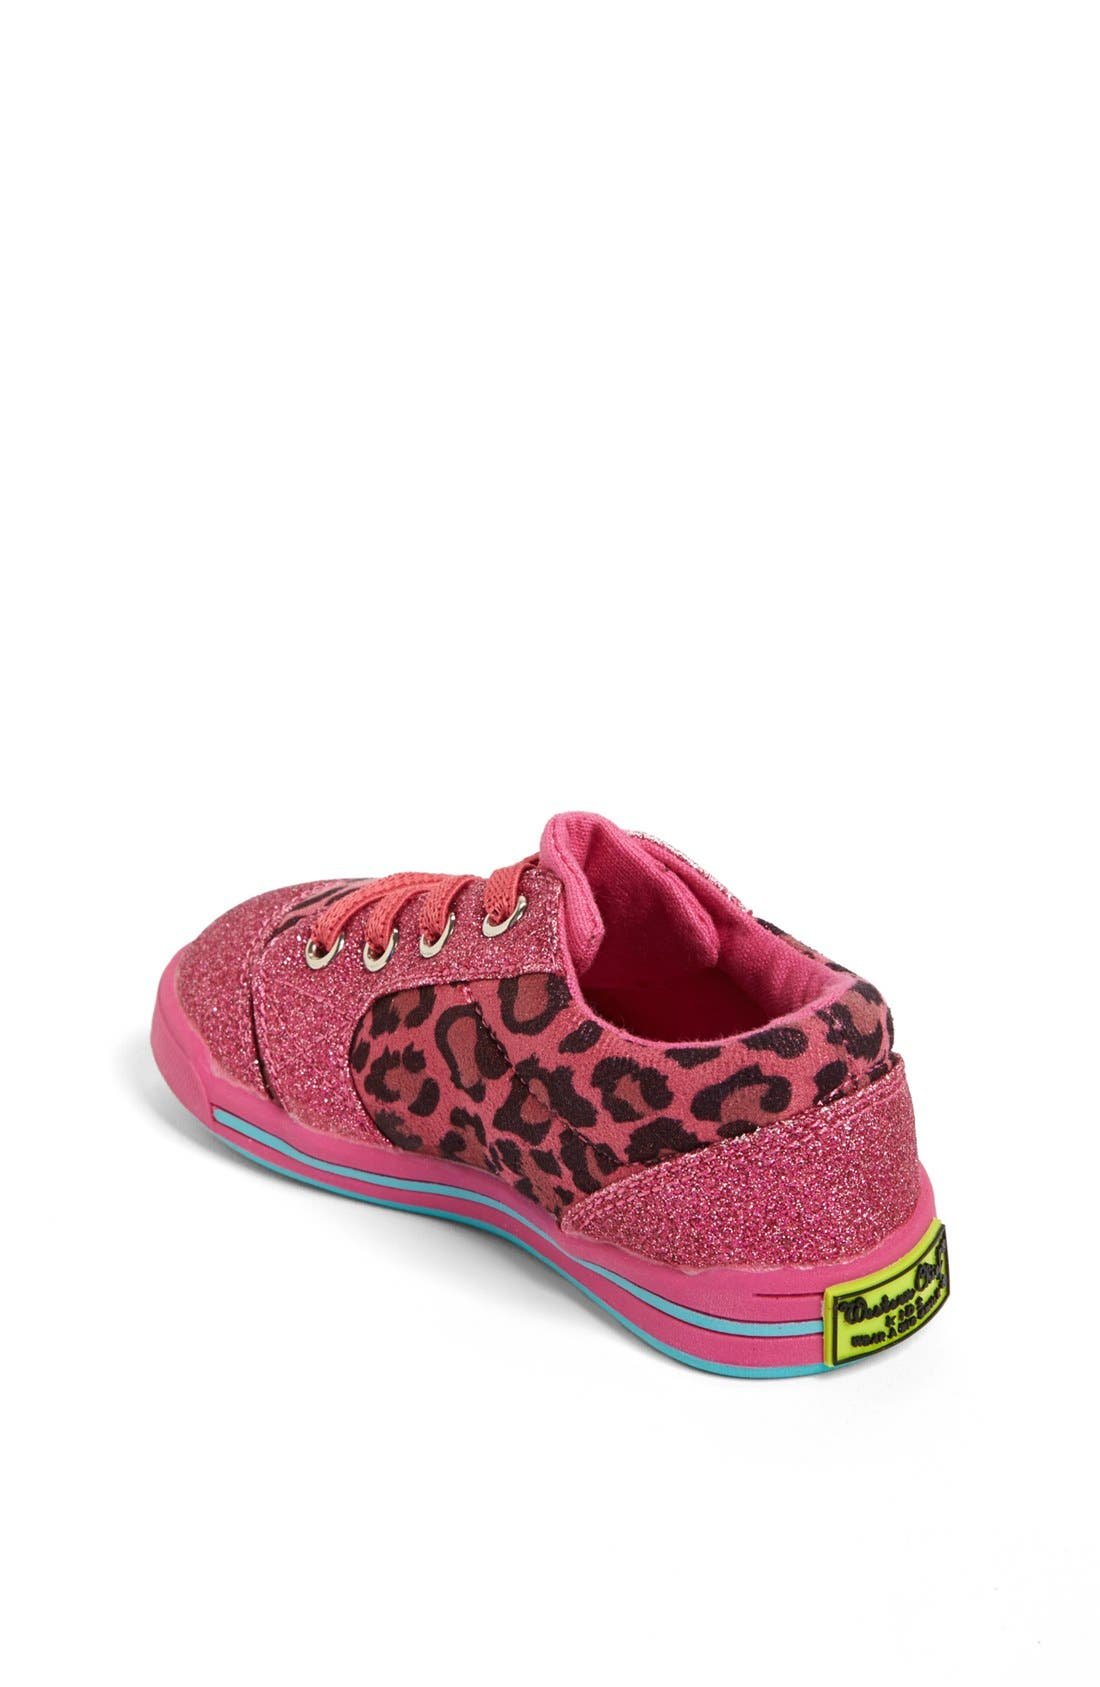 'Flashy Leopard' Sneaker,                             Alternate thumbnail 3, color,                             650